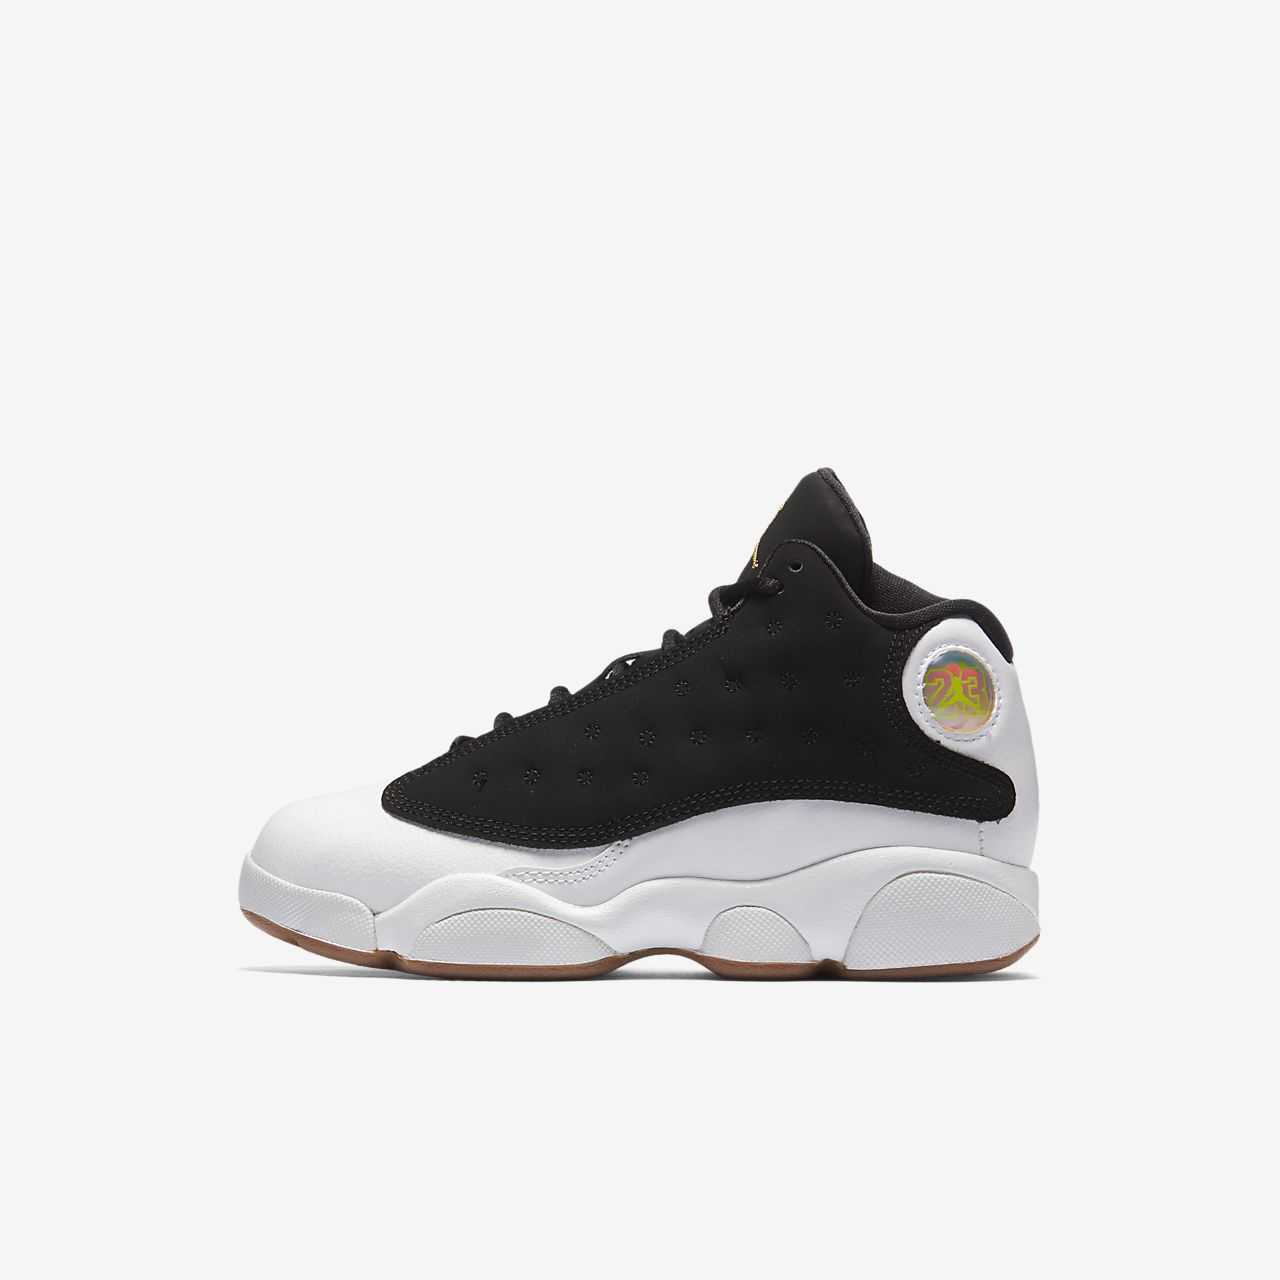 ... Air Jordan 13 Retro Little Kids' Shoe